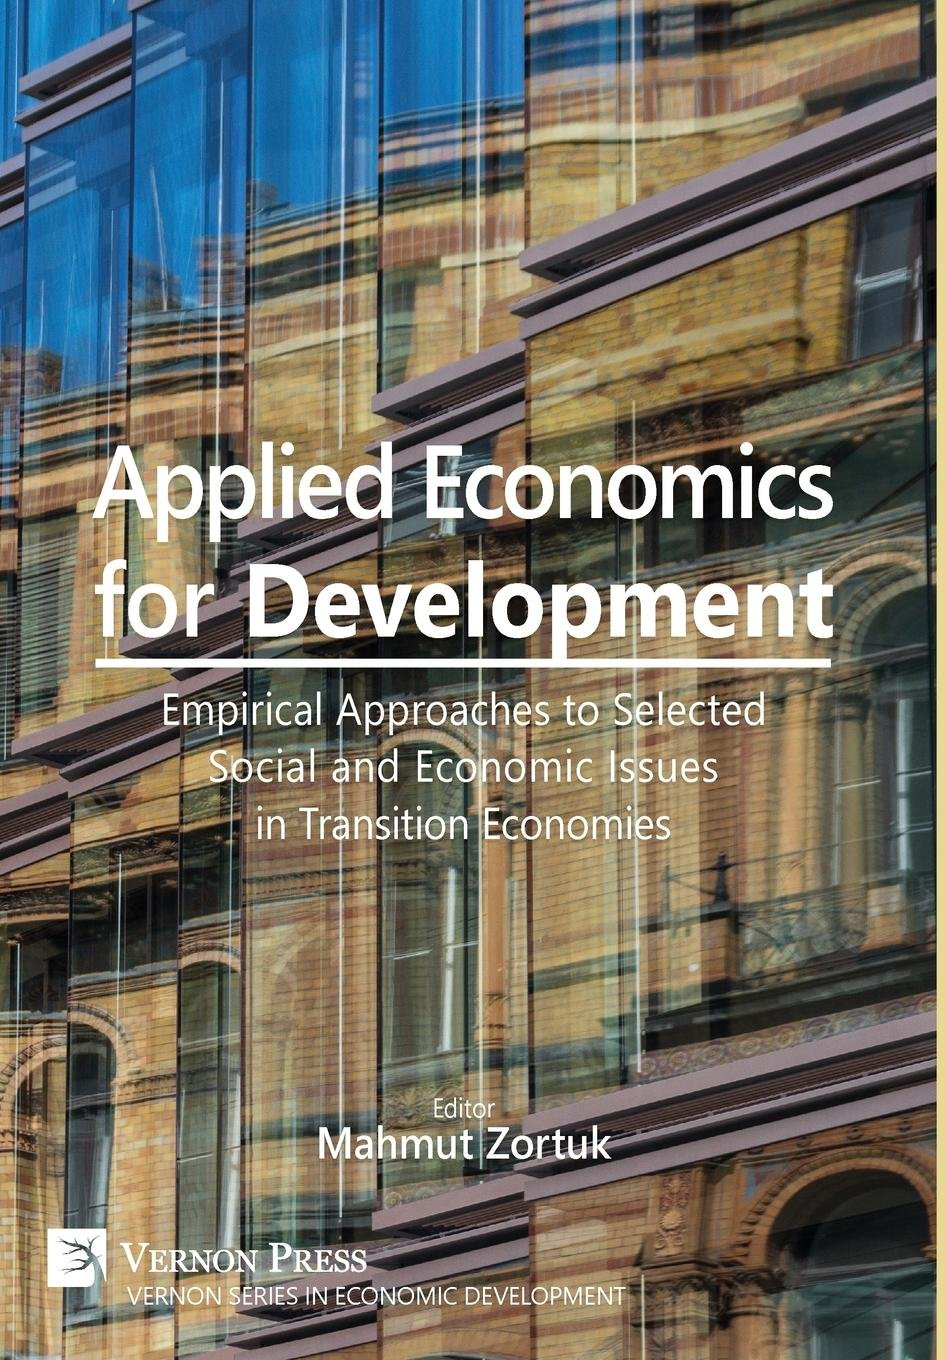 Download Applied Economics for Development: Empirical Approaches to Selected Social and Economic Issues in Transition Economies (Vernon Series in Economic Development) ebook